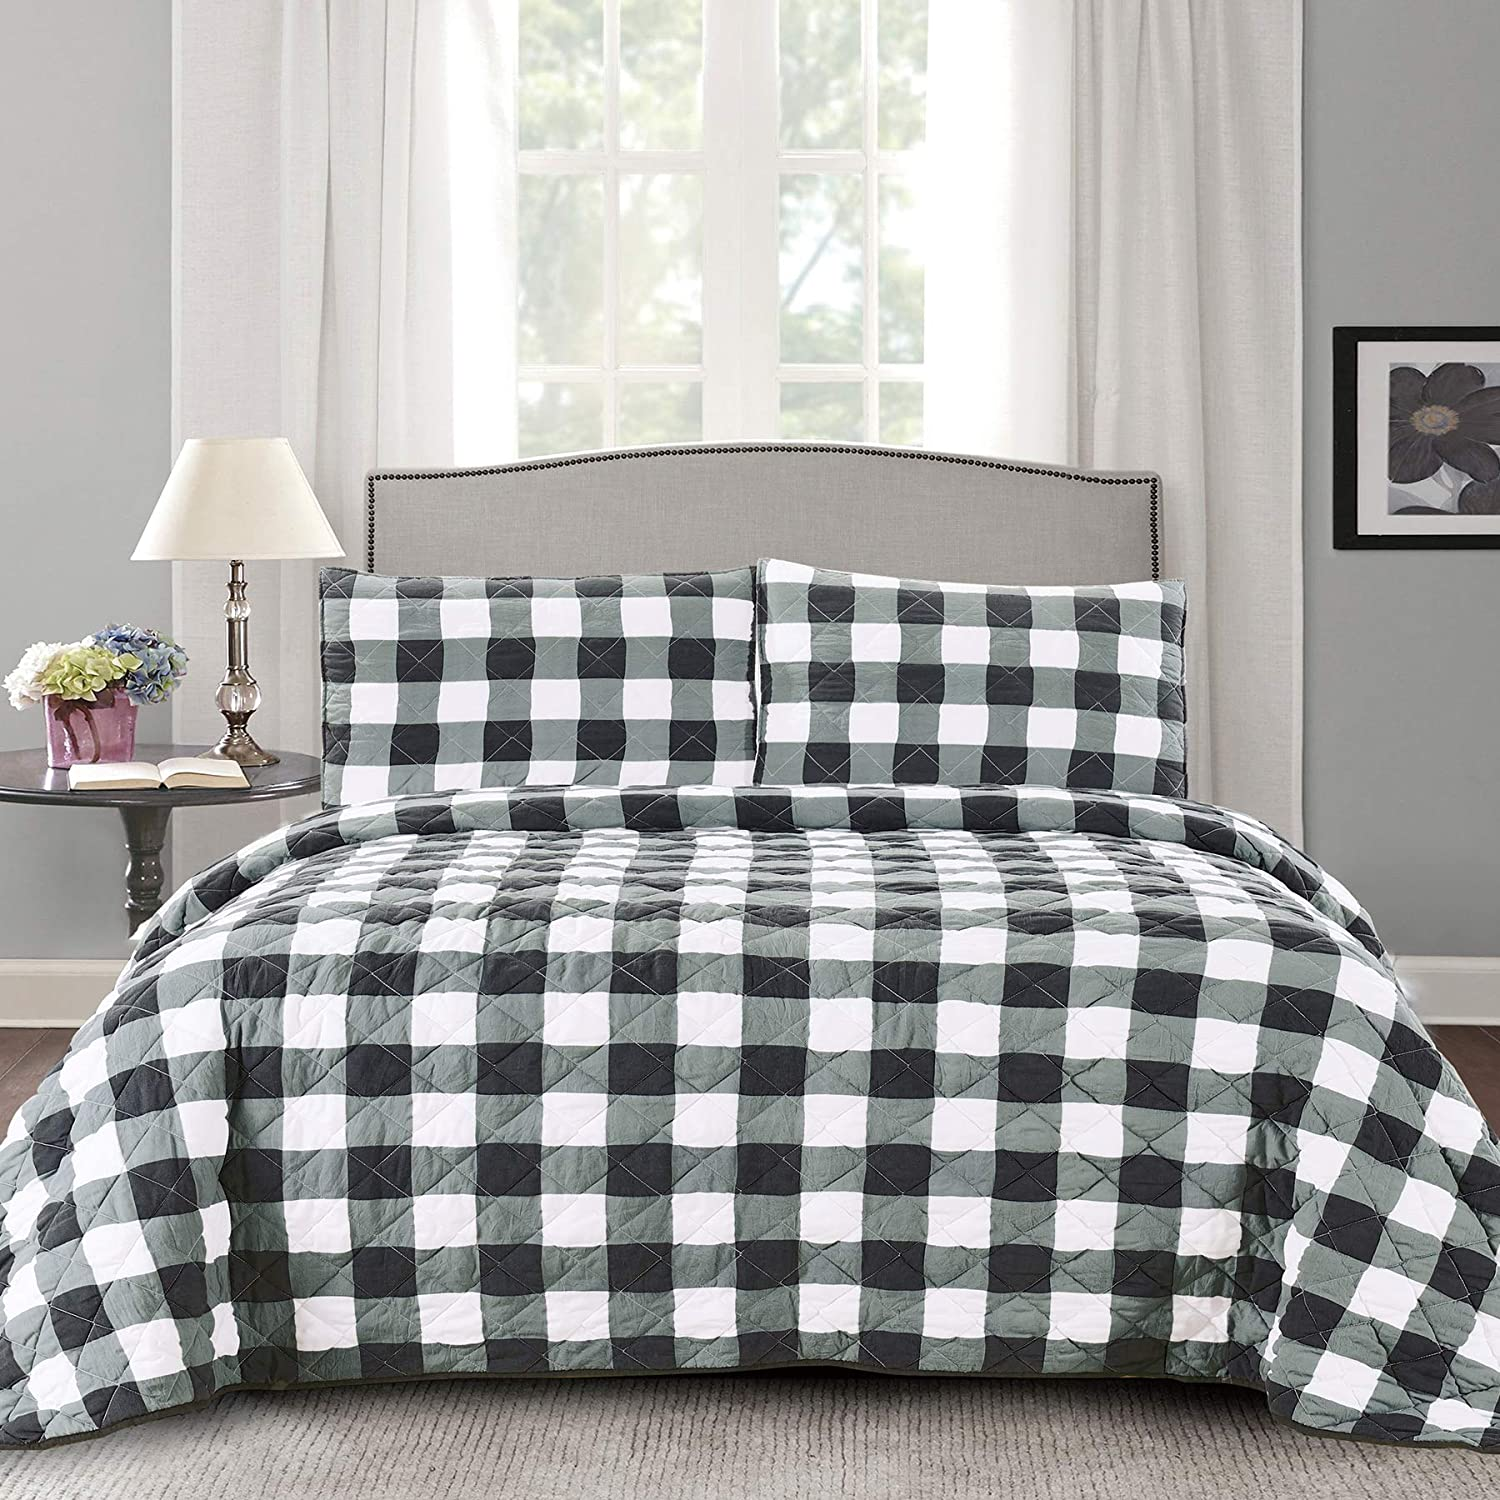 Sweet Home Collection Quilts Queen Size 3 Piece Set Vintage Pre Wash Buffalo Check Oversized Reversible Pattern with Pillow Shams, White/Black